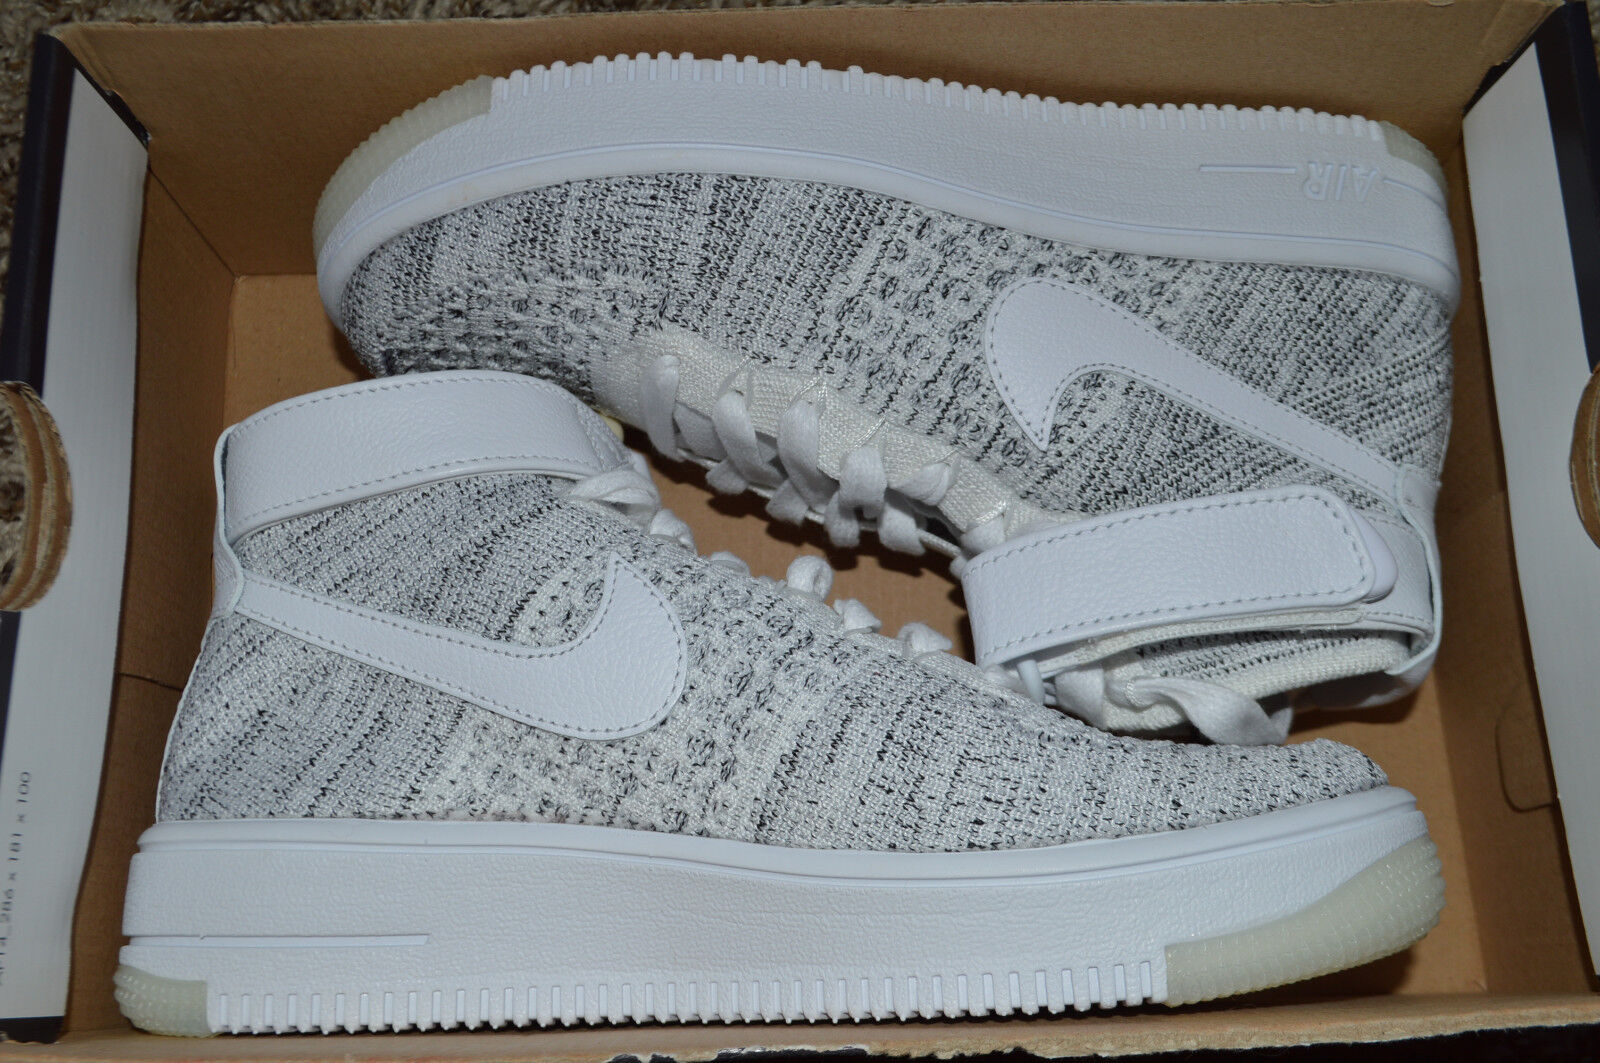 New Nike Womens AF1 Air Force 1 Flyknit Athletic Shoes 818018-101 sz 9 White